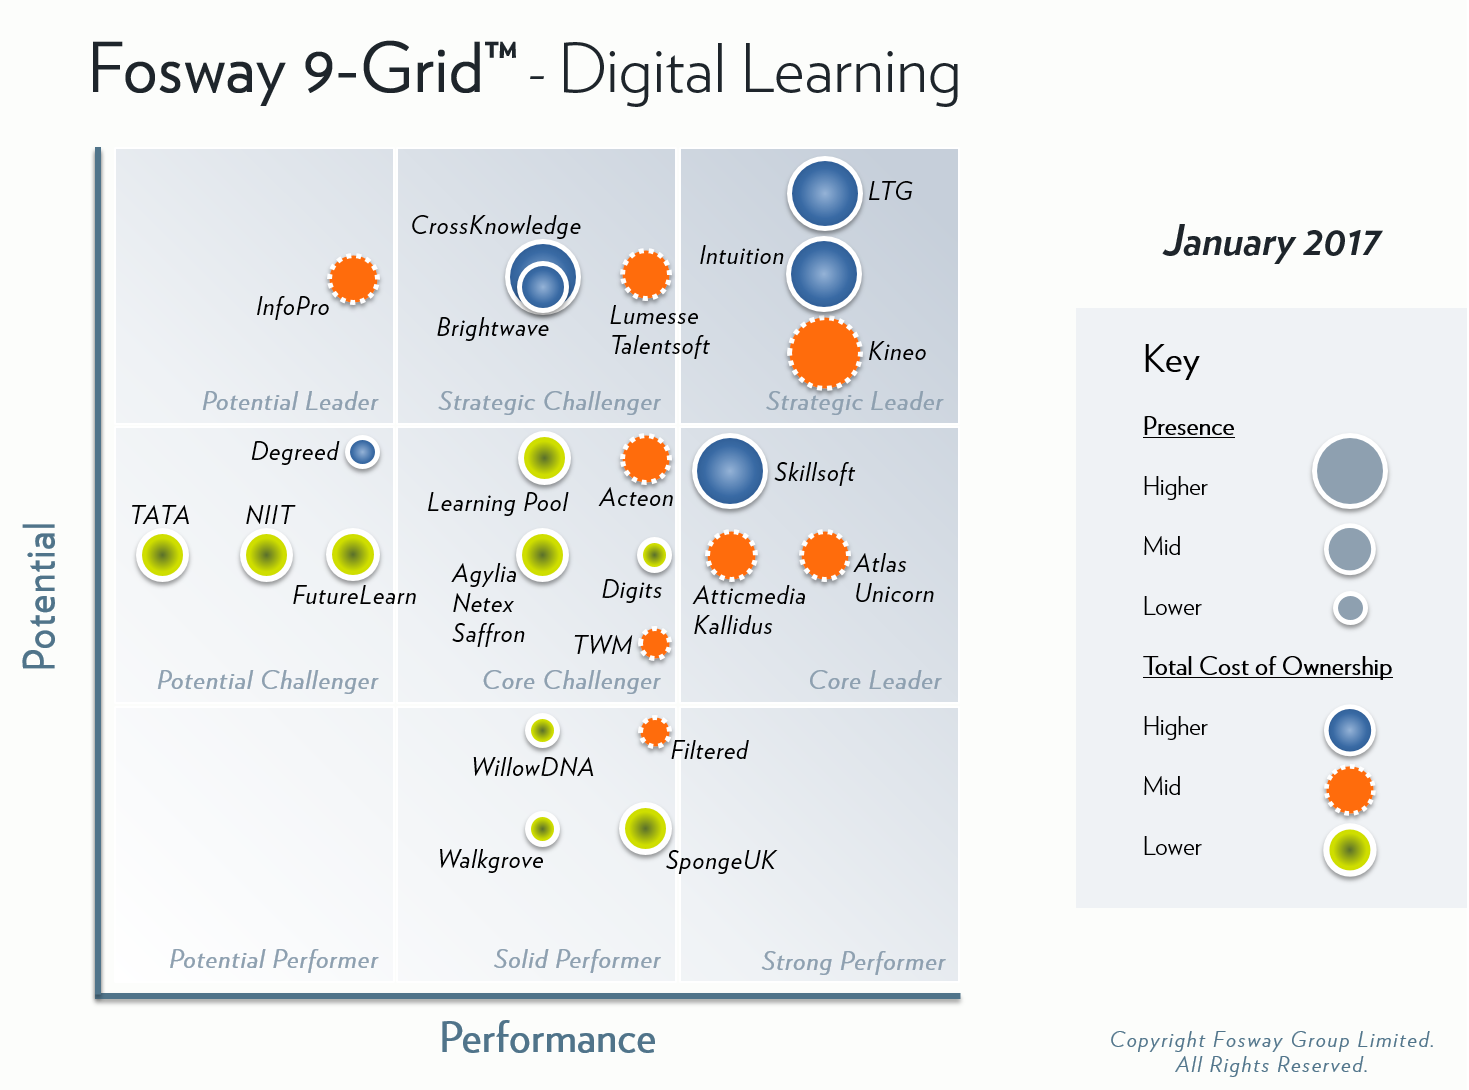 Fosway 9-Grid - Digital Learning 2017